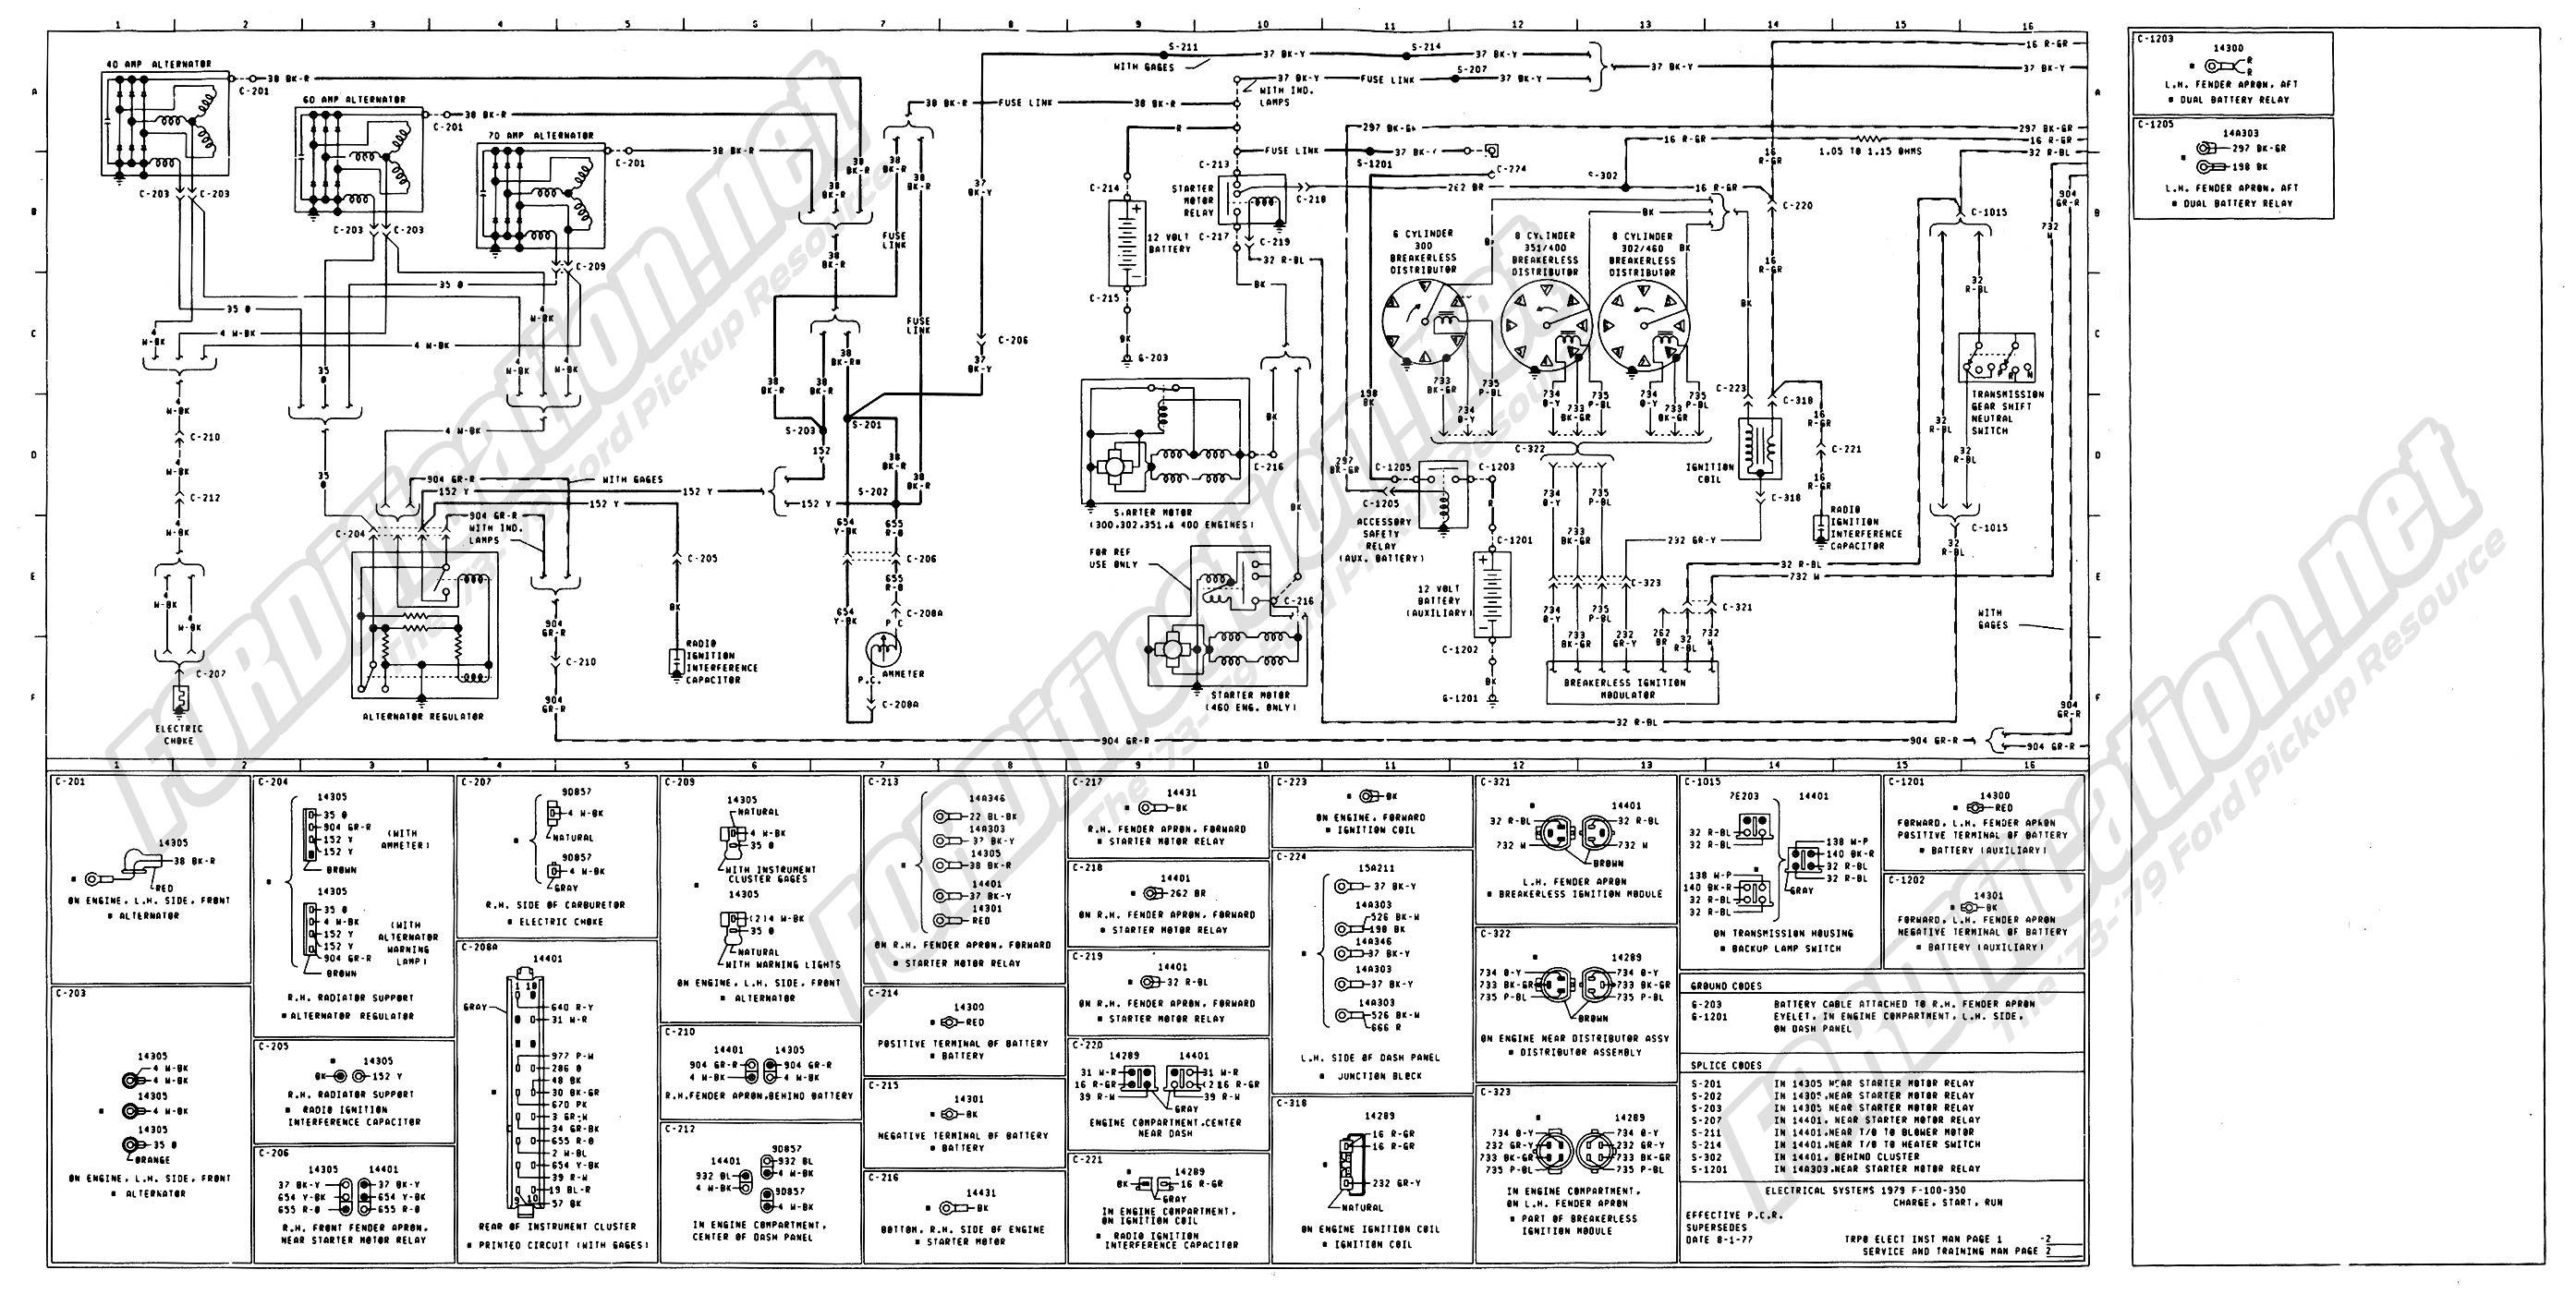 1975 Ford Wiring Diagram Schemes 1976 Maverick 1973 1979 Truck Diagrams Schematics Fordification Net 1996 F 150